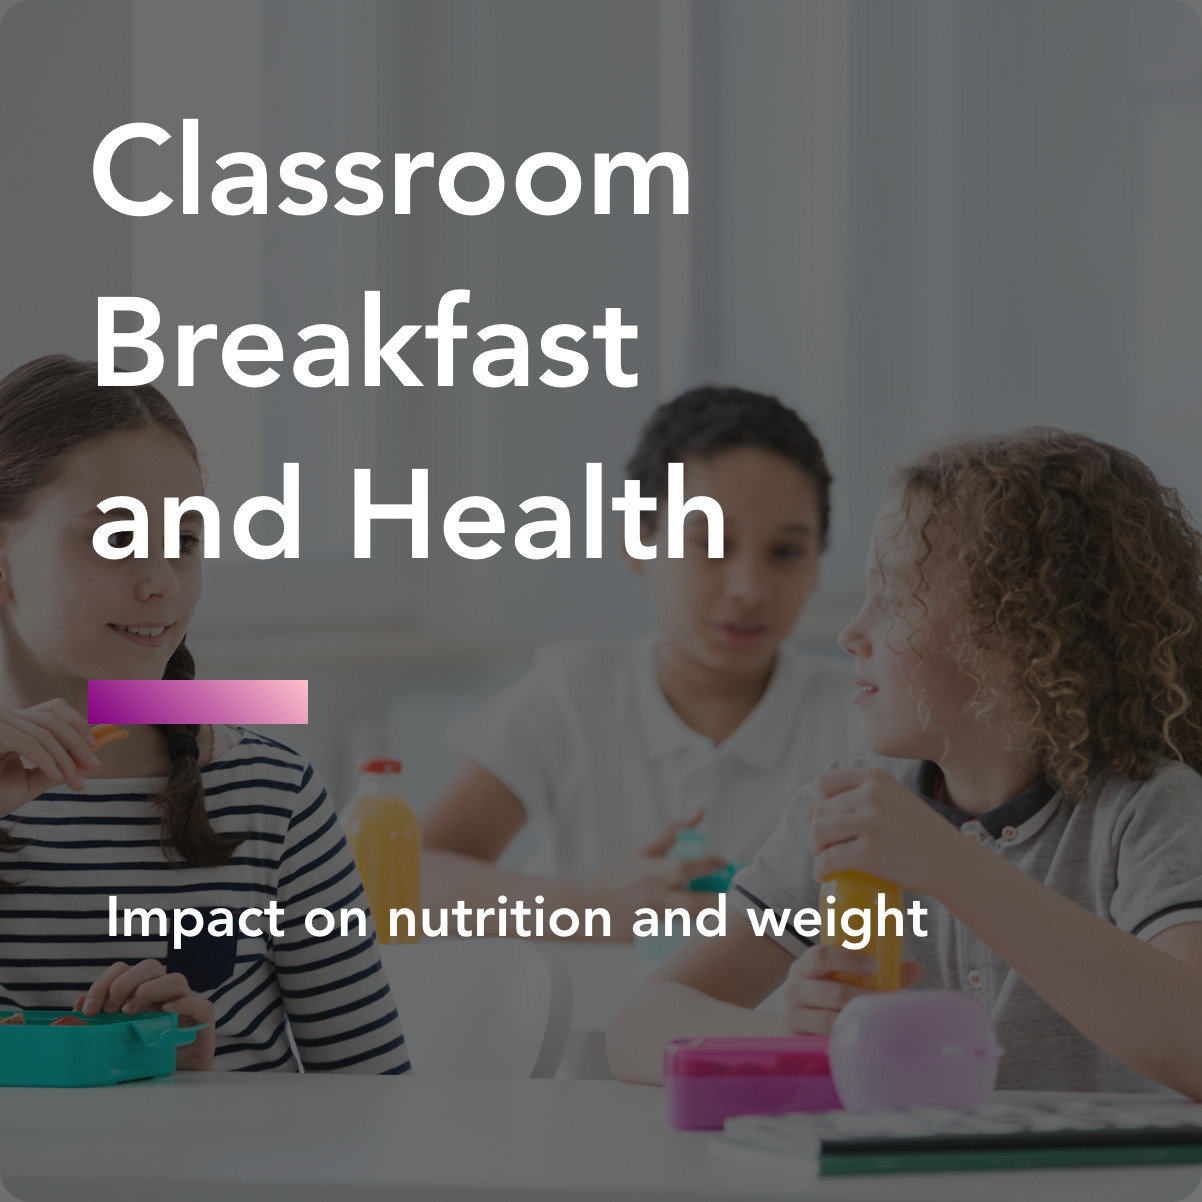 Classroom breakfast and health title